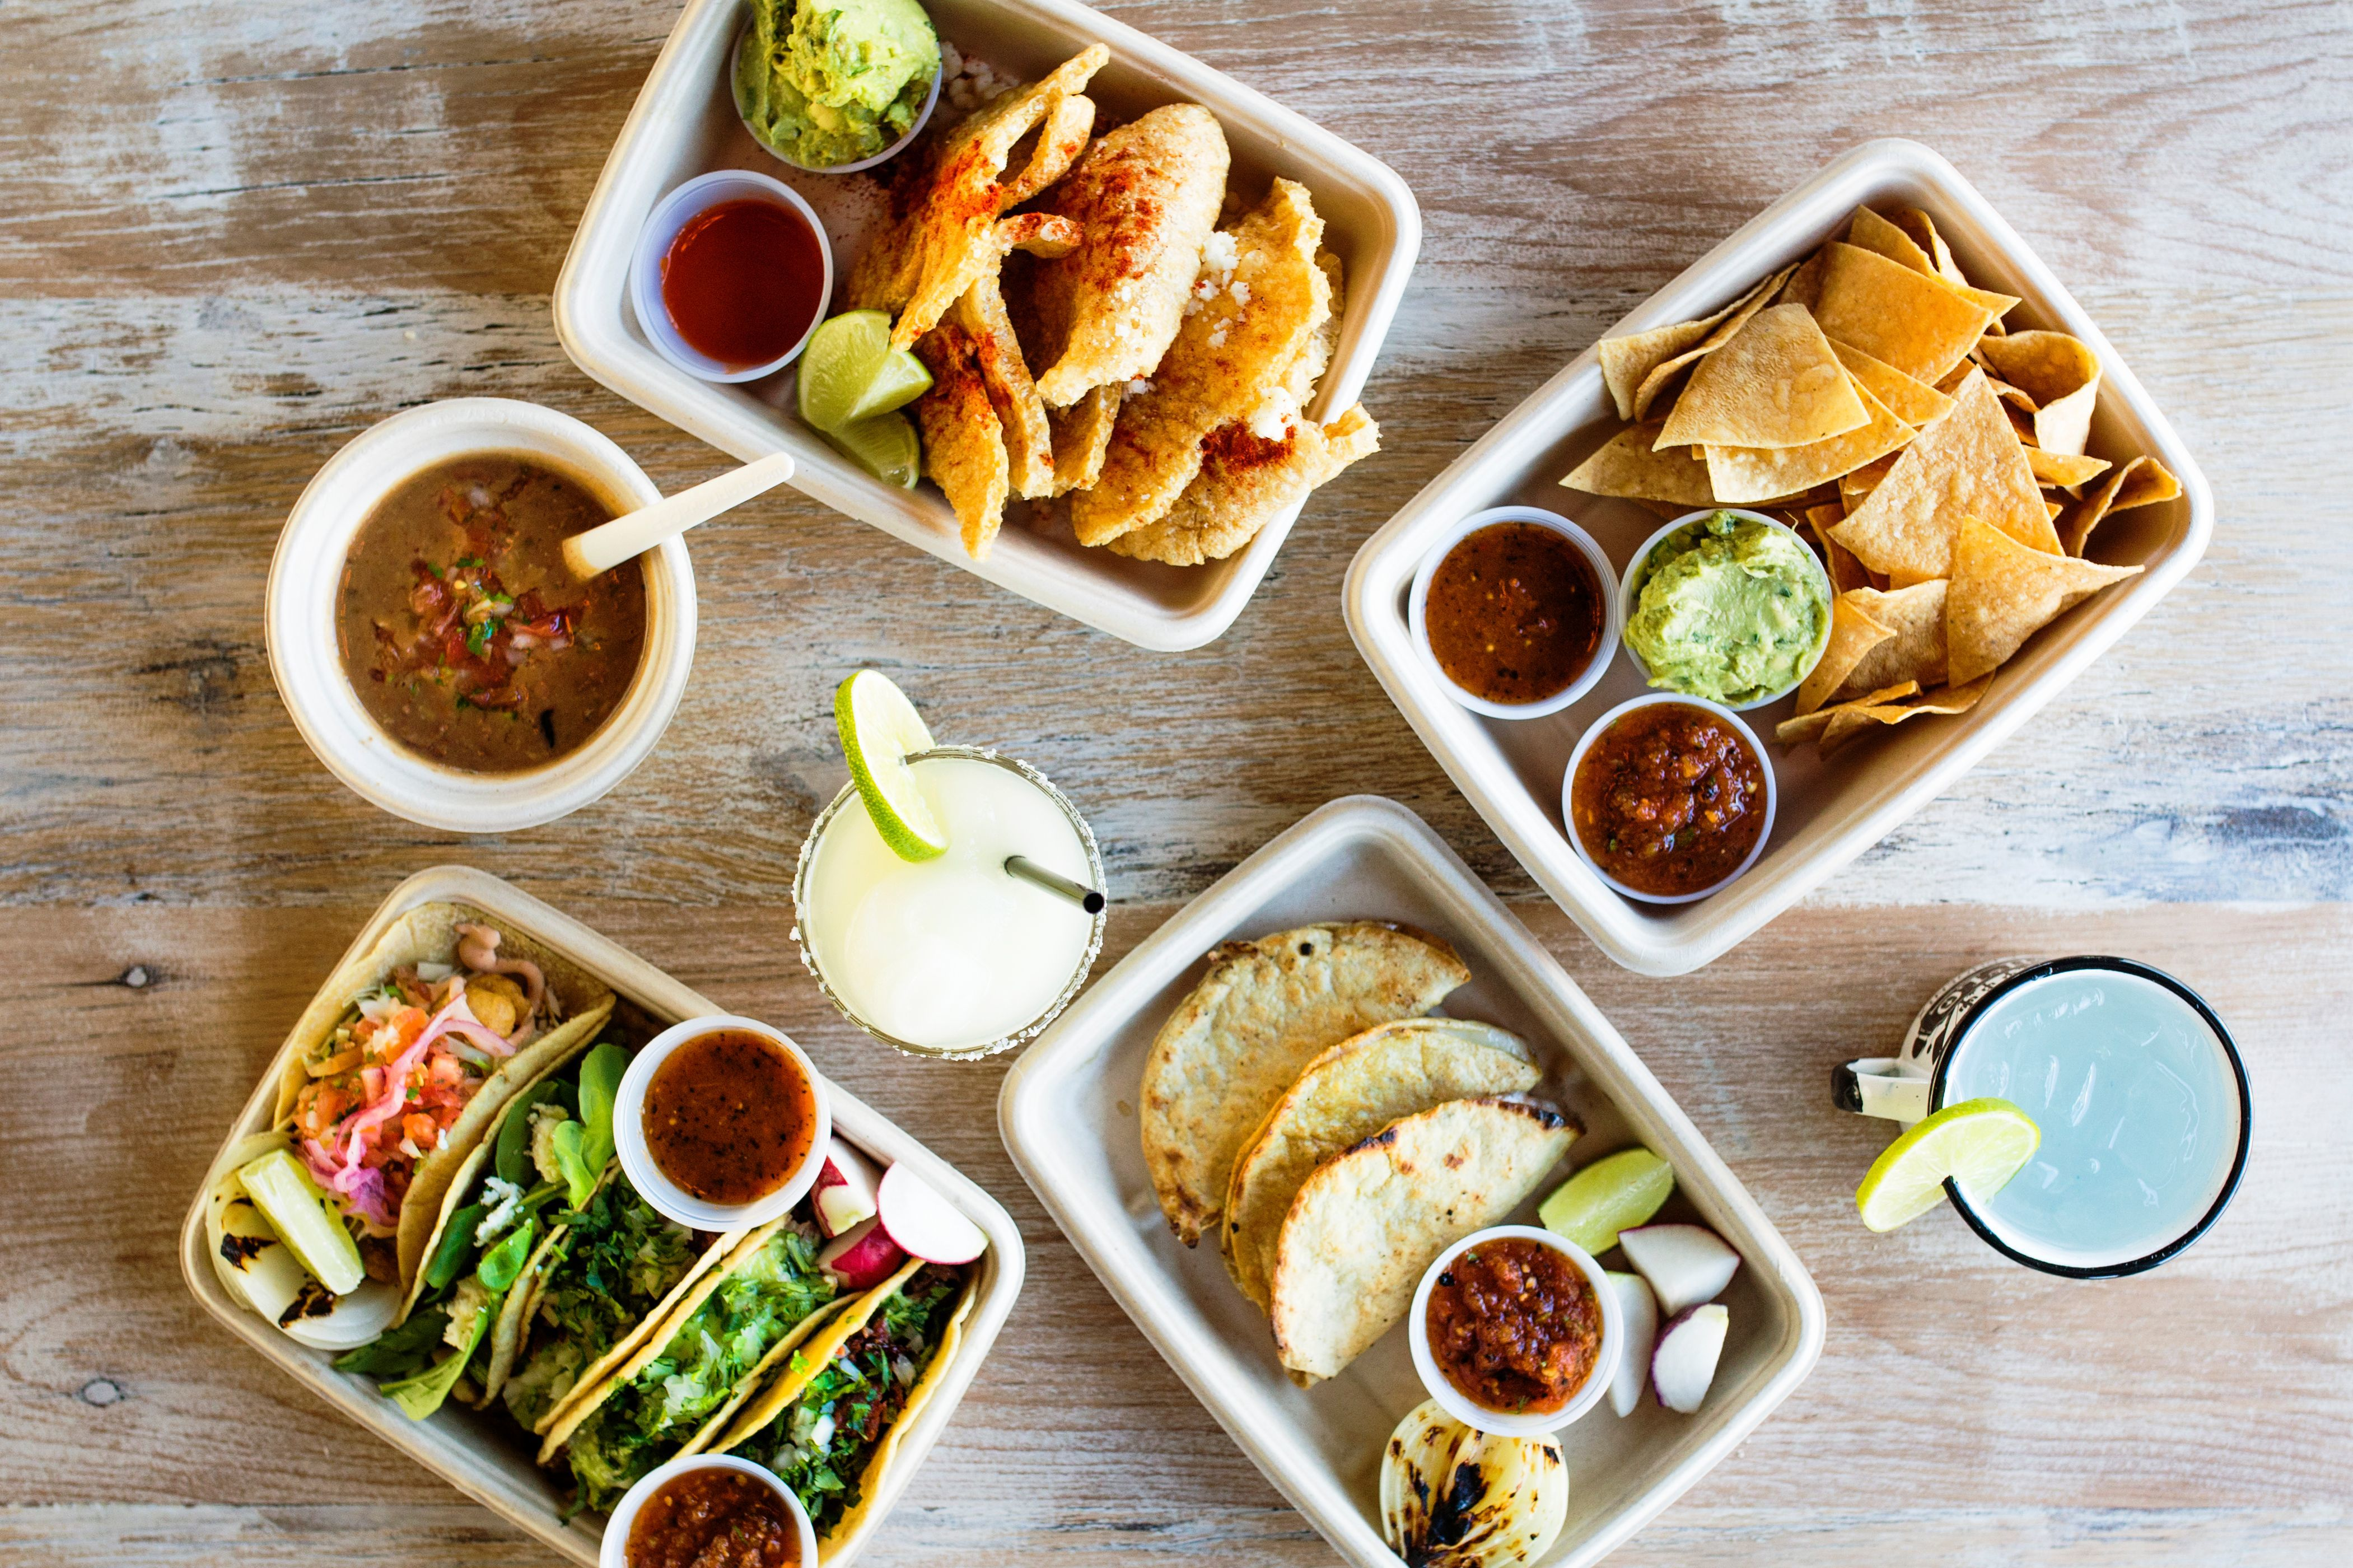 Taco Chelo |Nov. 11, buy one brunch entree, get one free from 11 a.m. to 3 p.m. | Details: 501 E. Roosevelt St., Phoenix. 602- 368-5316, tacochelo.com.